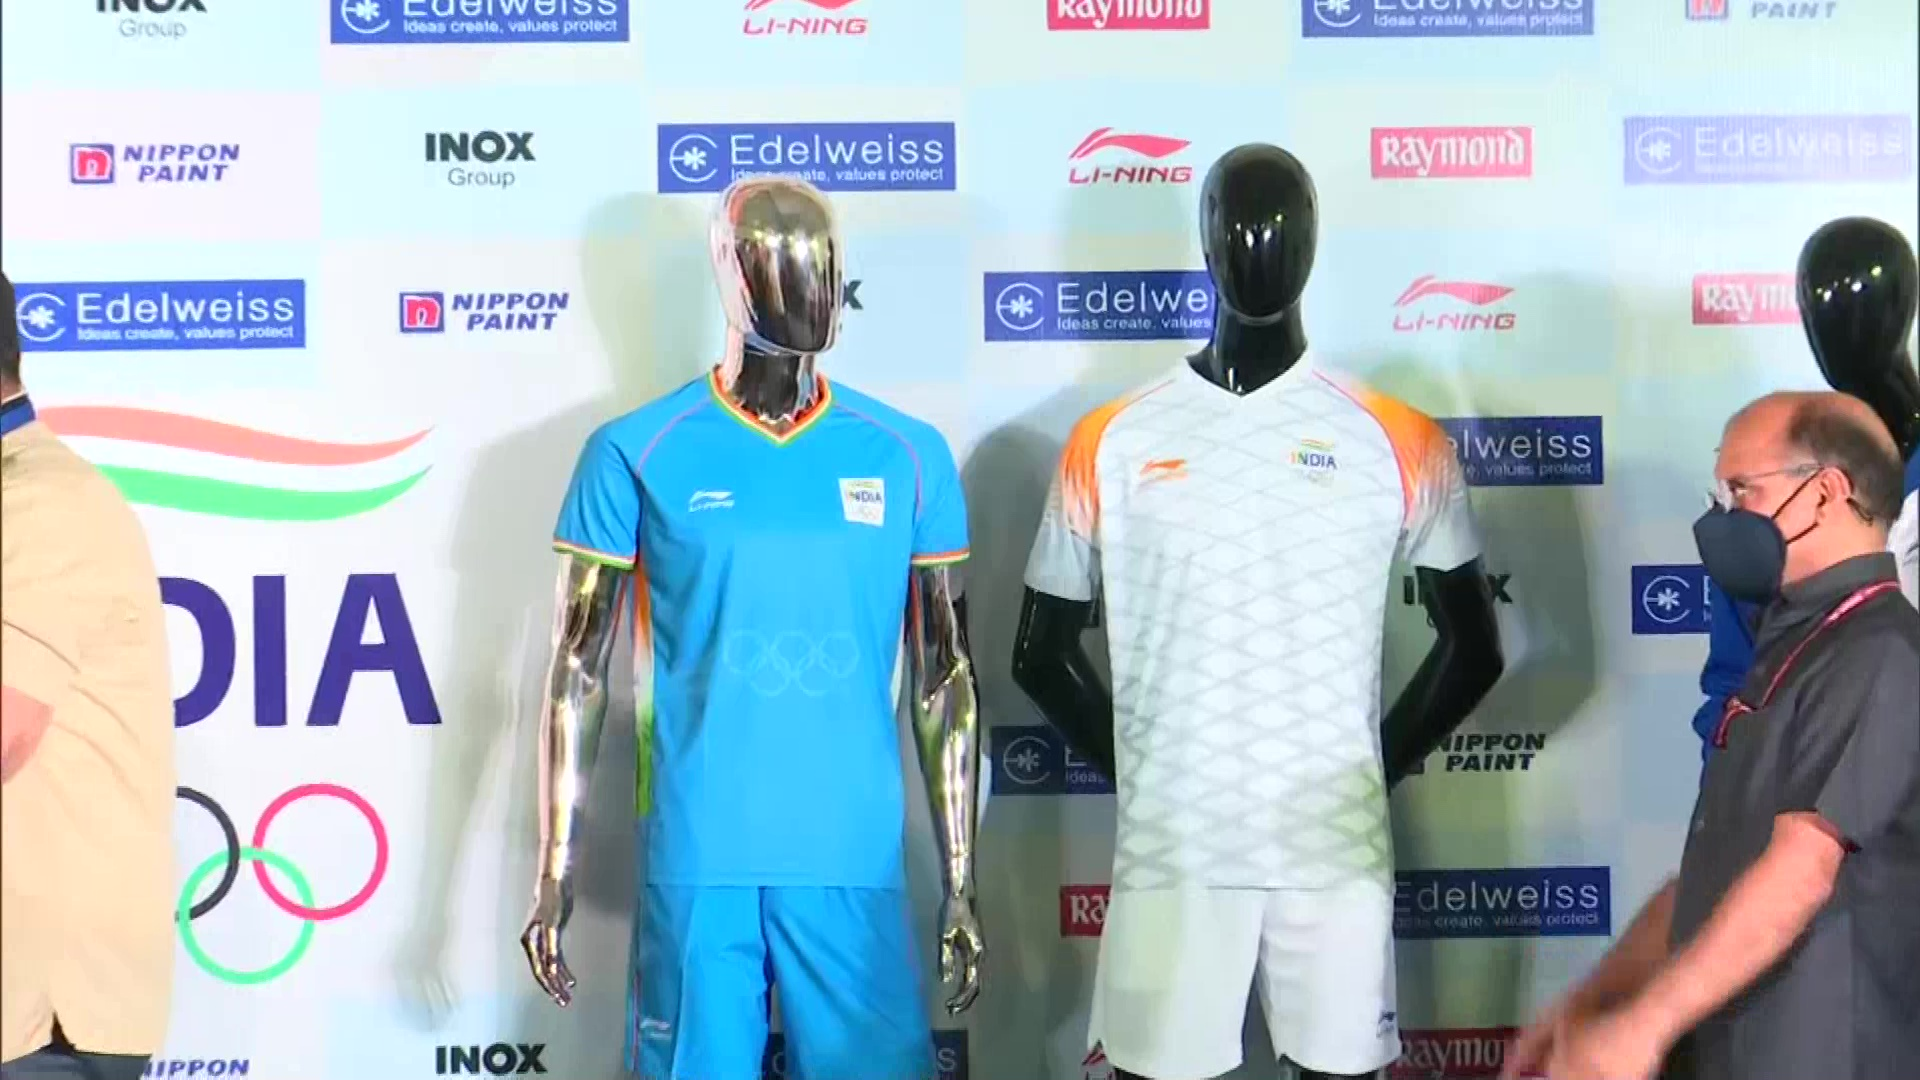 Kiren Rijiju unveiled India uniform for Tokyo Olympics 2020, an upcoming international multi-sport event scheduled to be held from July 23.